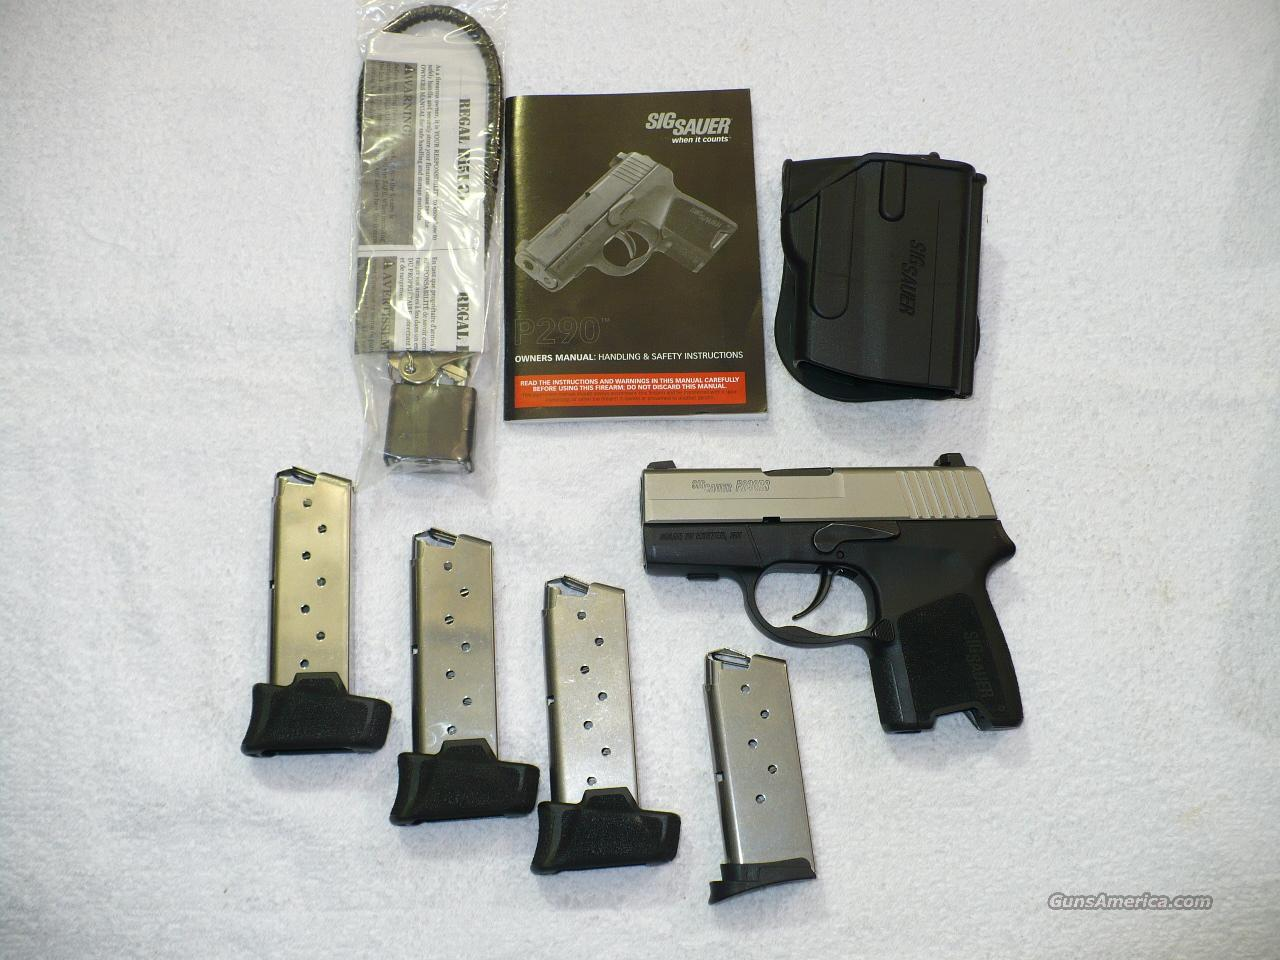 Sig Sauer P290RS 2-Tone Trade-In  Guns > Pistols > Sig - Sauer/Sigarms Pistols > P290